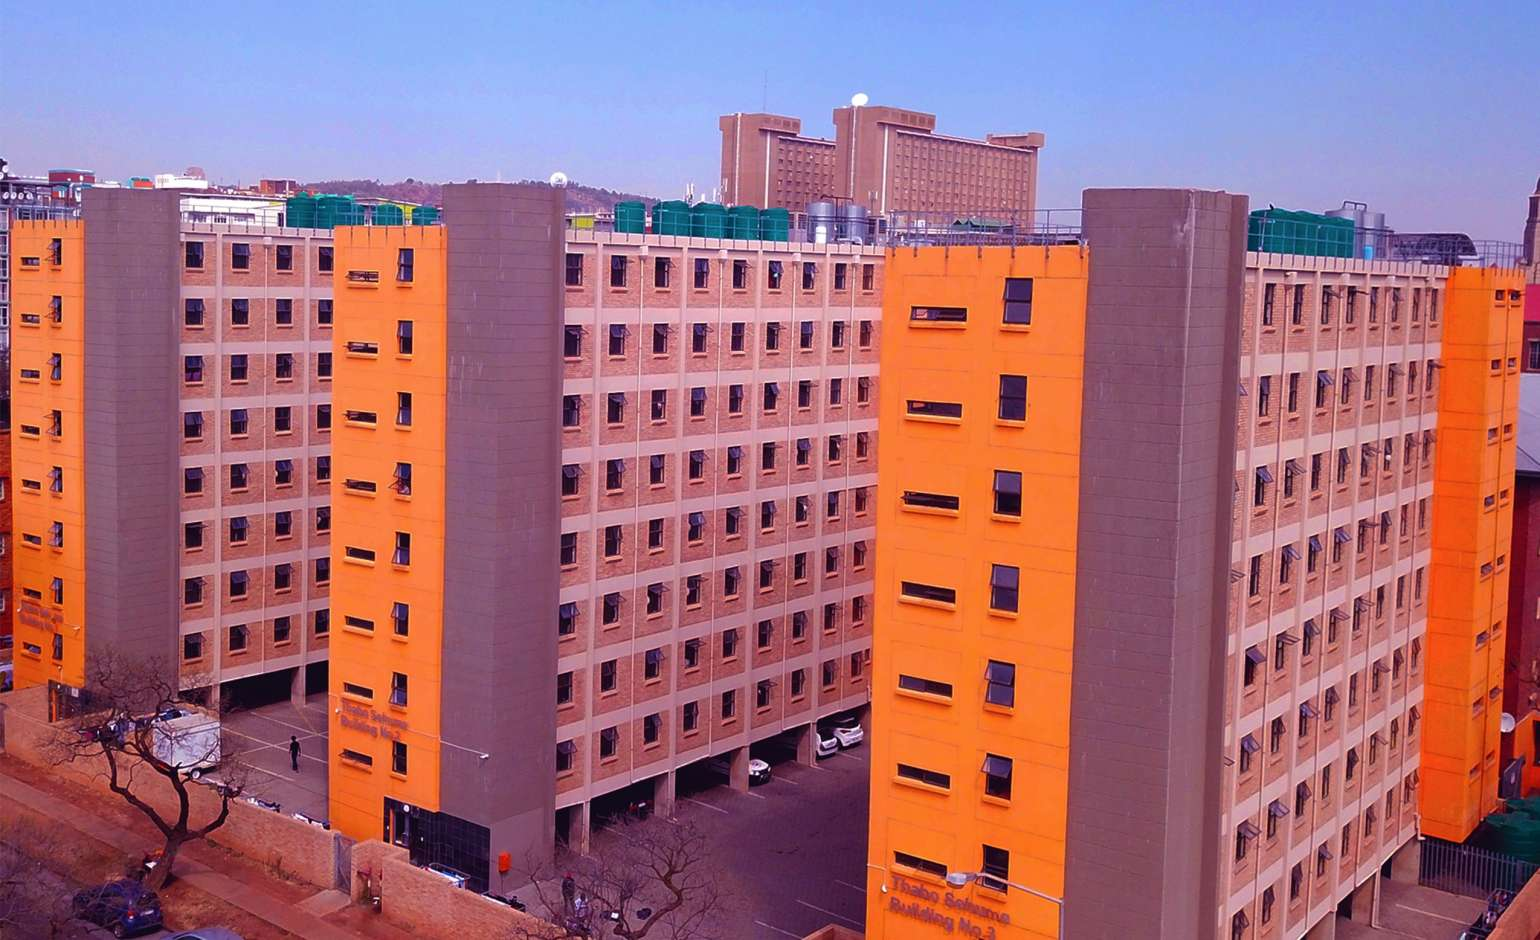 THABO SEHUME BUILDING